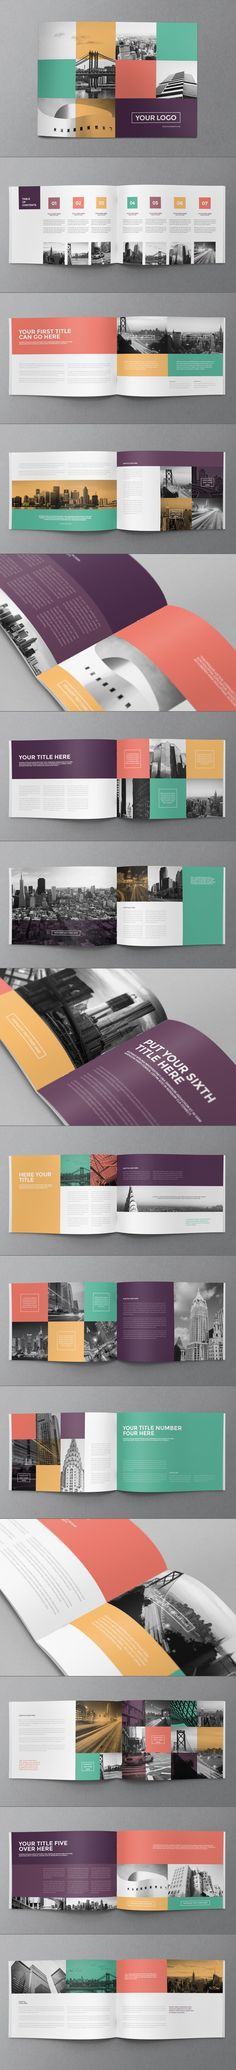 Color / Grid / Photos /// Colorful Squares Brochure. Download here: http://graphicriver.net/item/colorful-squares-brochure/8982919?ref=abradesign #brochure #design #editorial